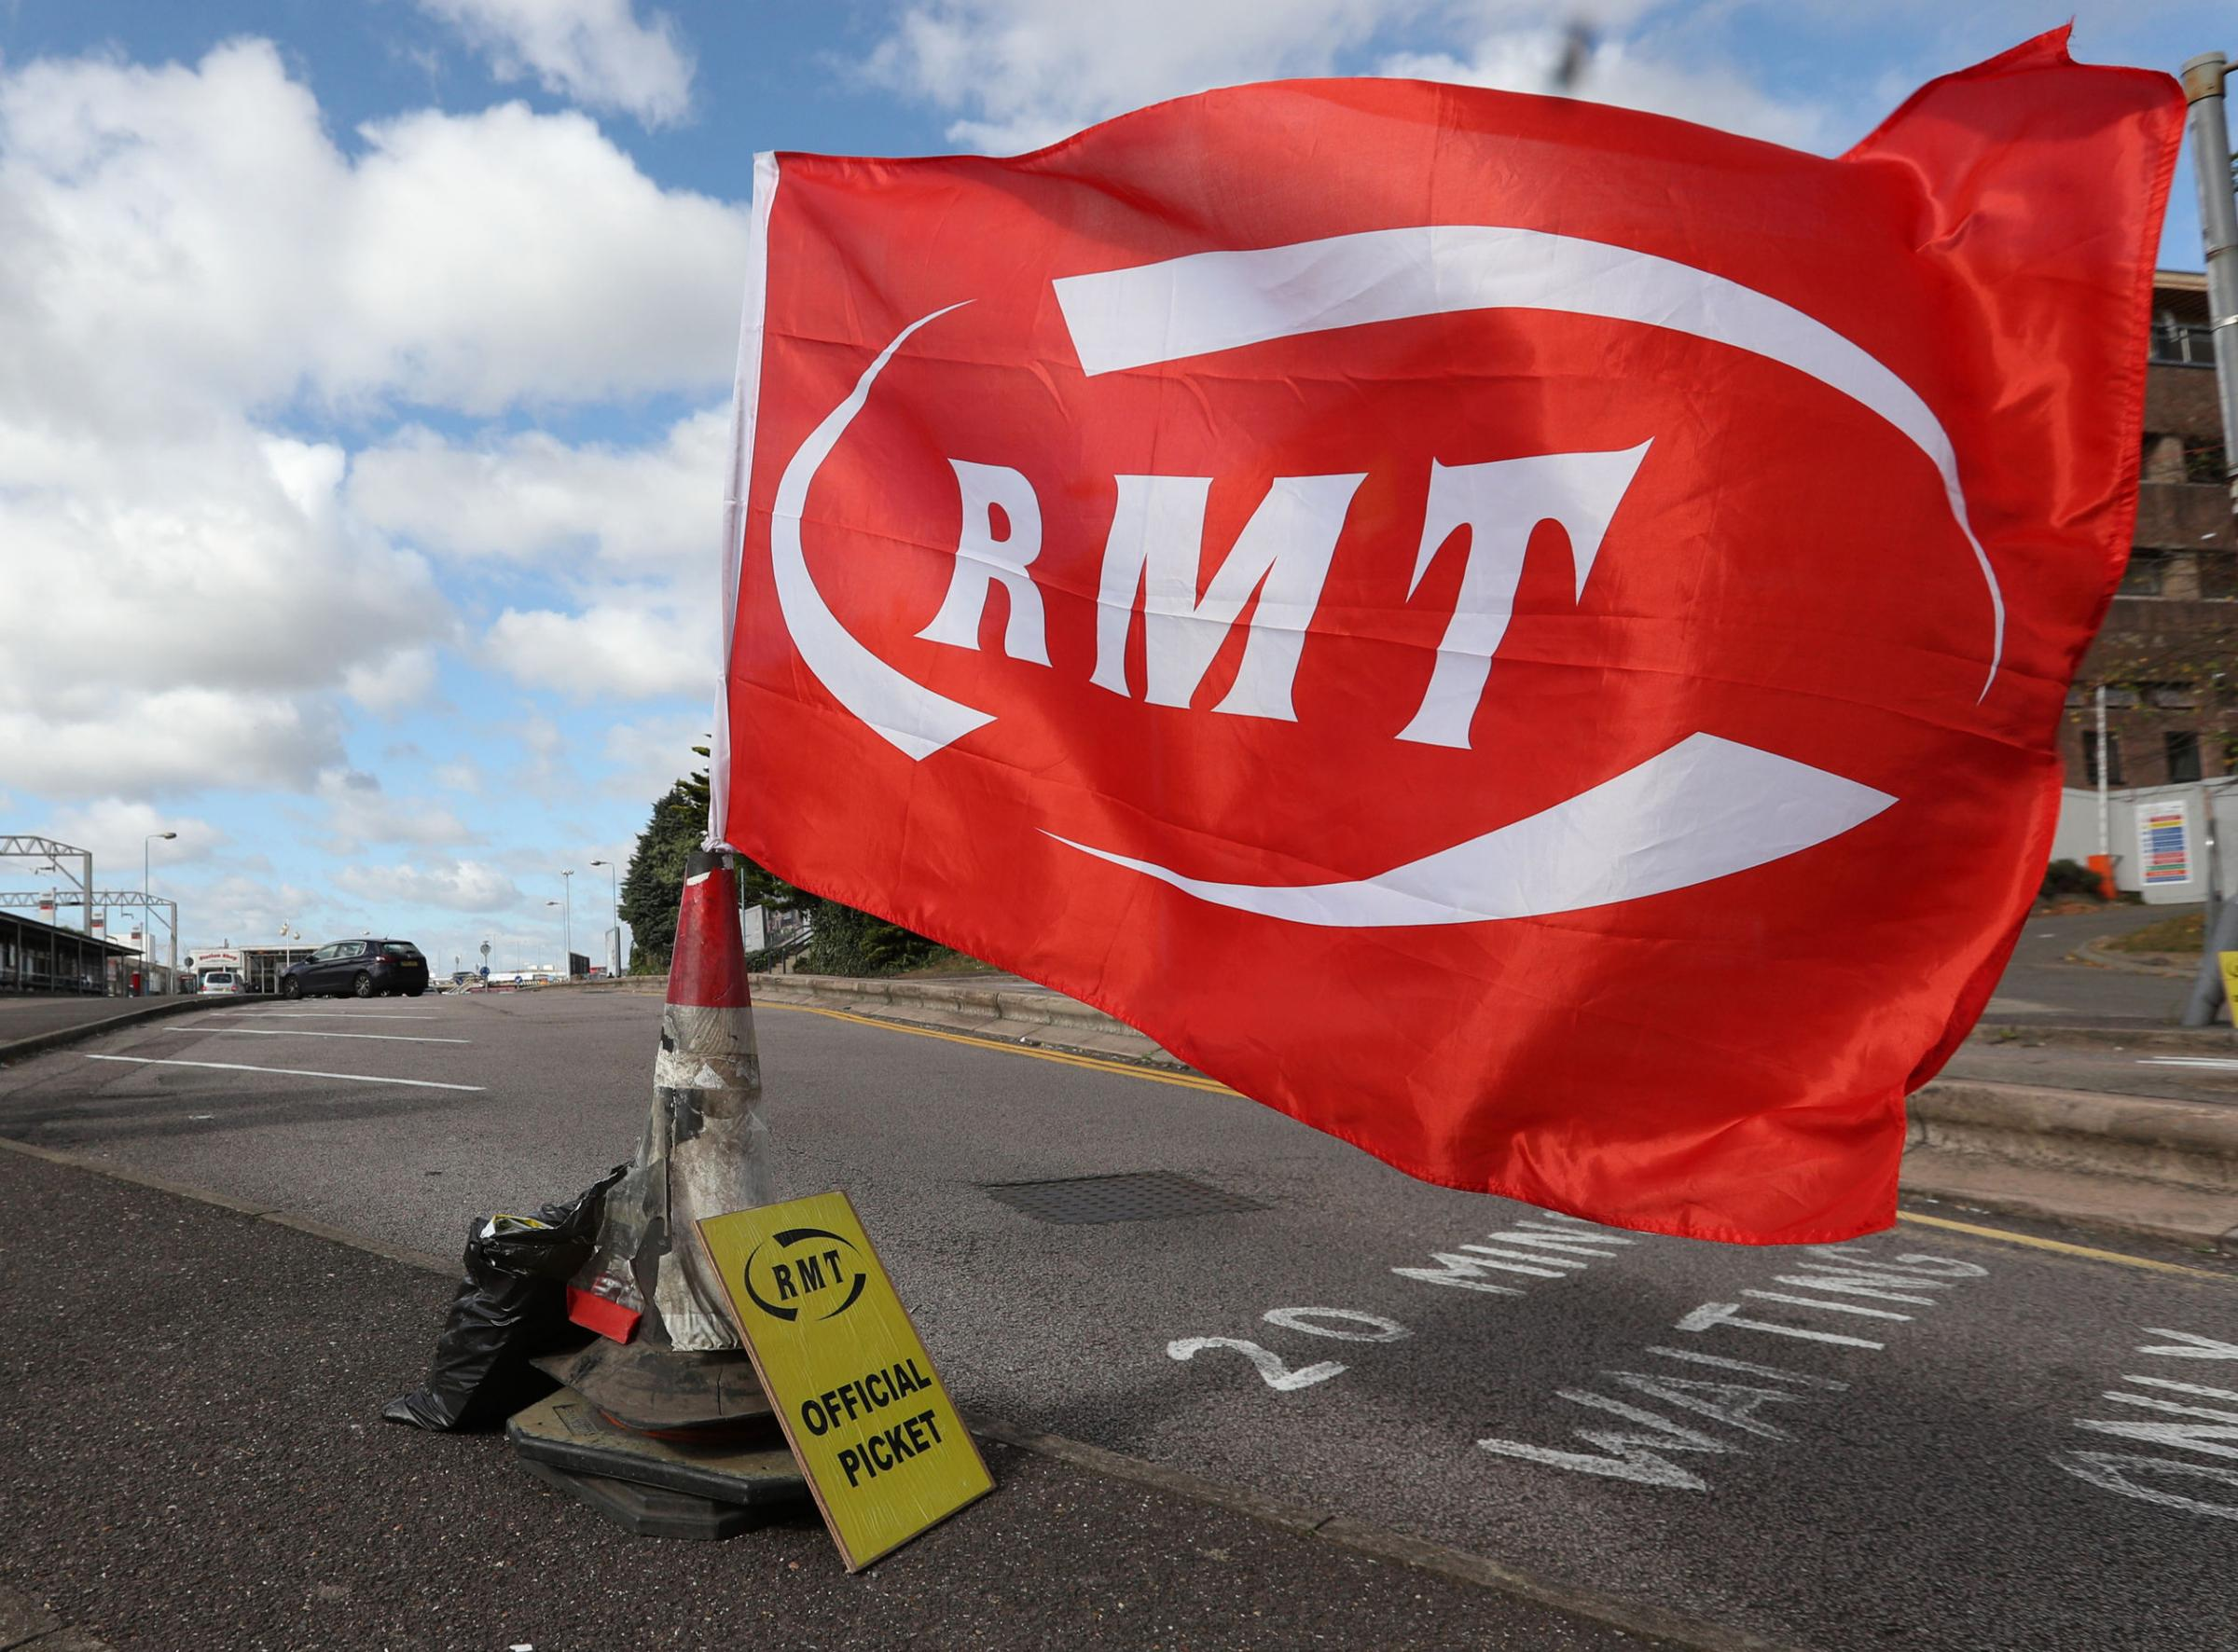 Members of the Rail, Maritime and Transport union (RMT) will walk out on Monday, Wednesday and Friday Photo credit: Jonathan Brady/PA Wire.